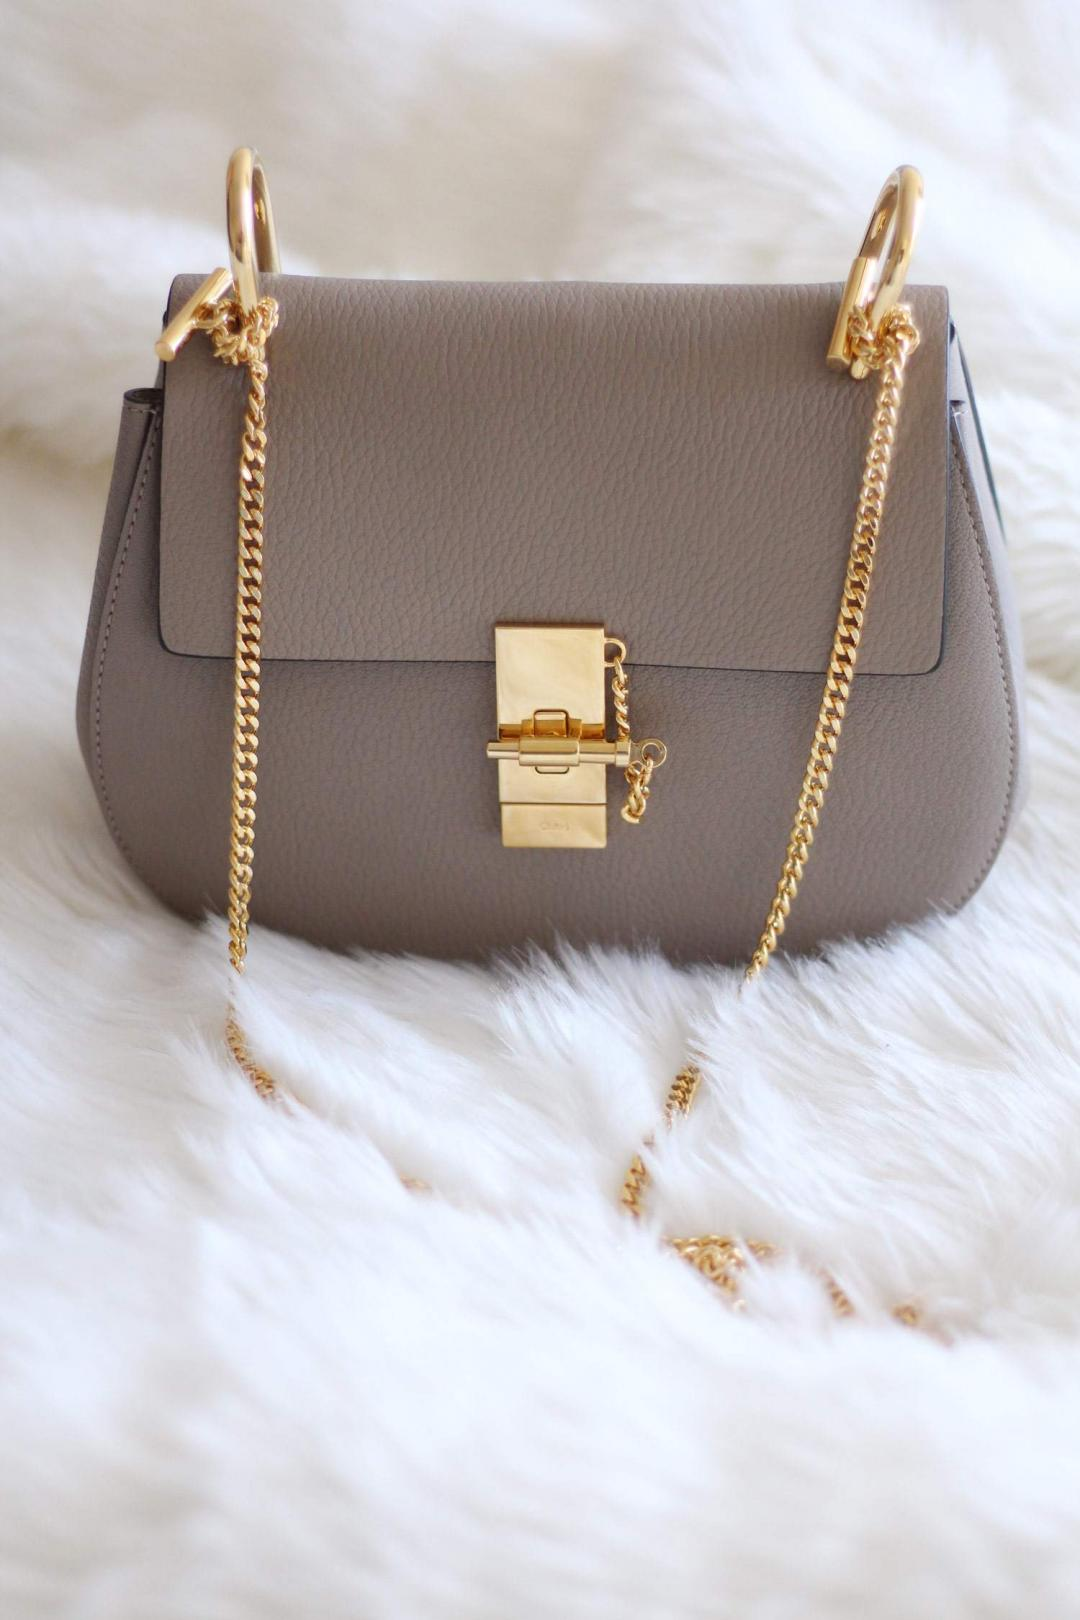 chloe-drew-bag-in-grey-motty-small-gold-hardwear-chain-net-a-porter